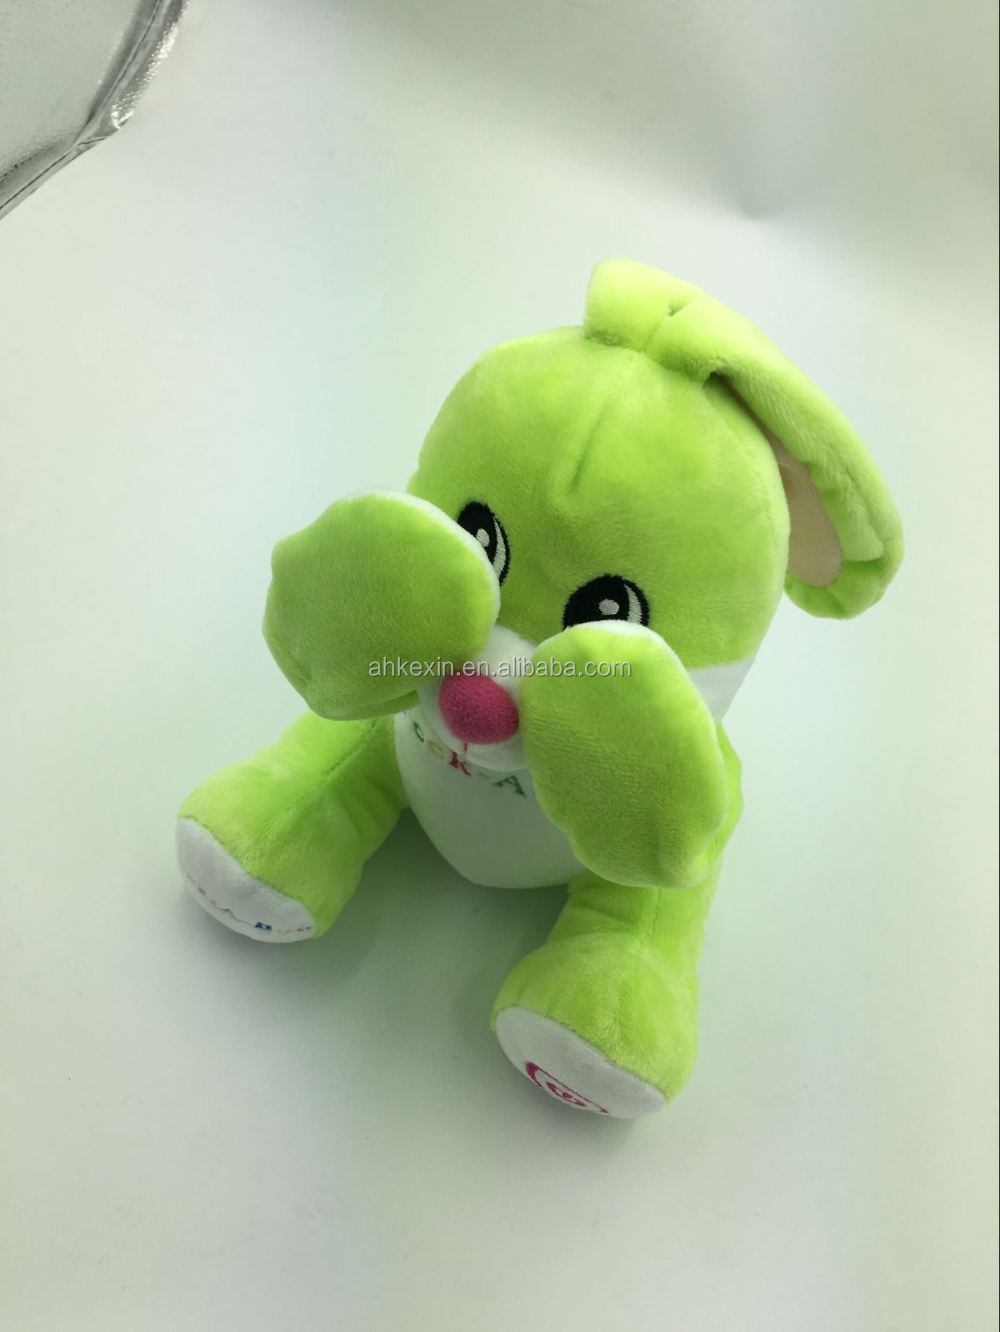 New products on china market customs mimicry talking rabbit electrical plush toys